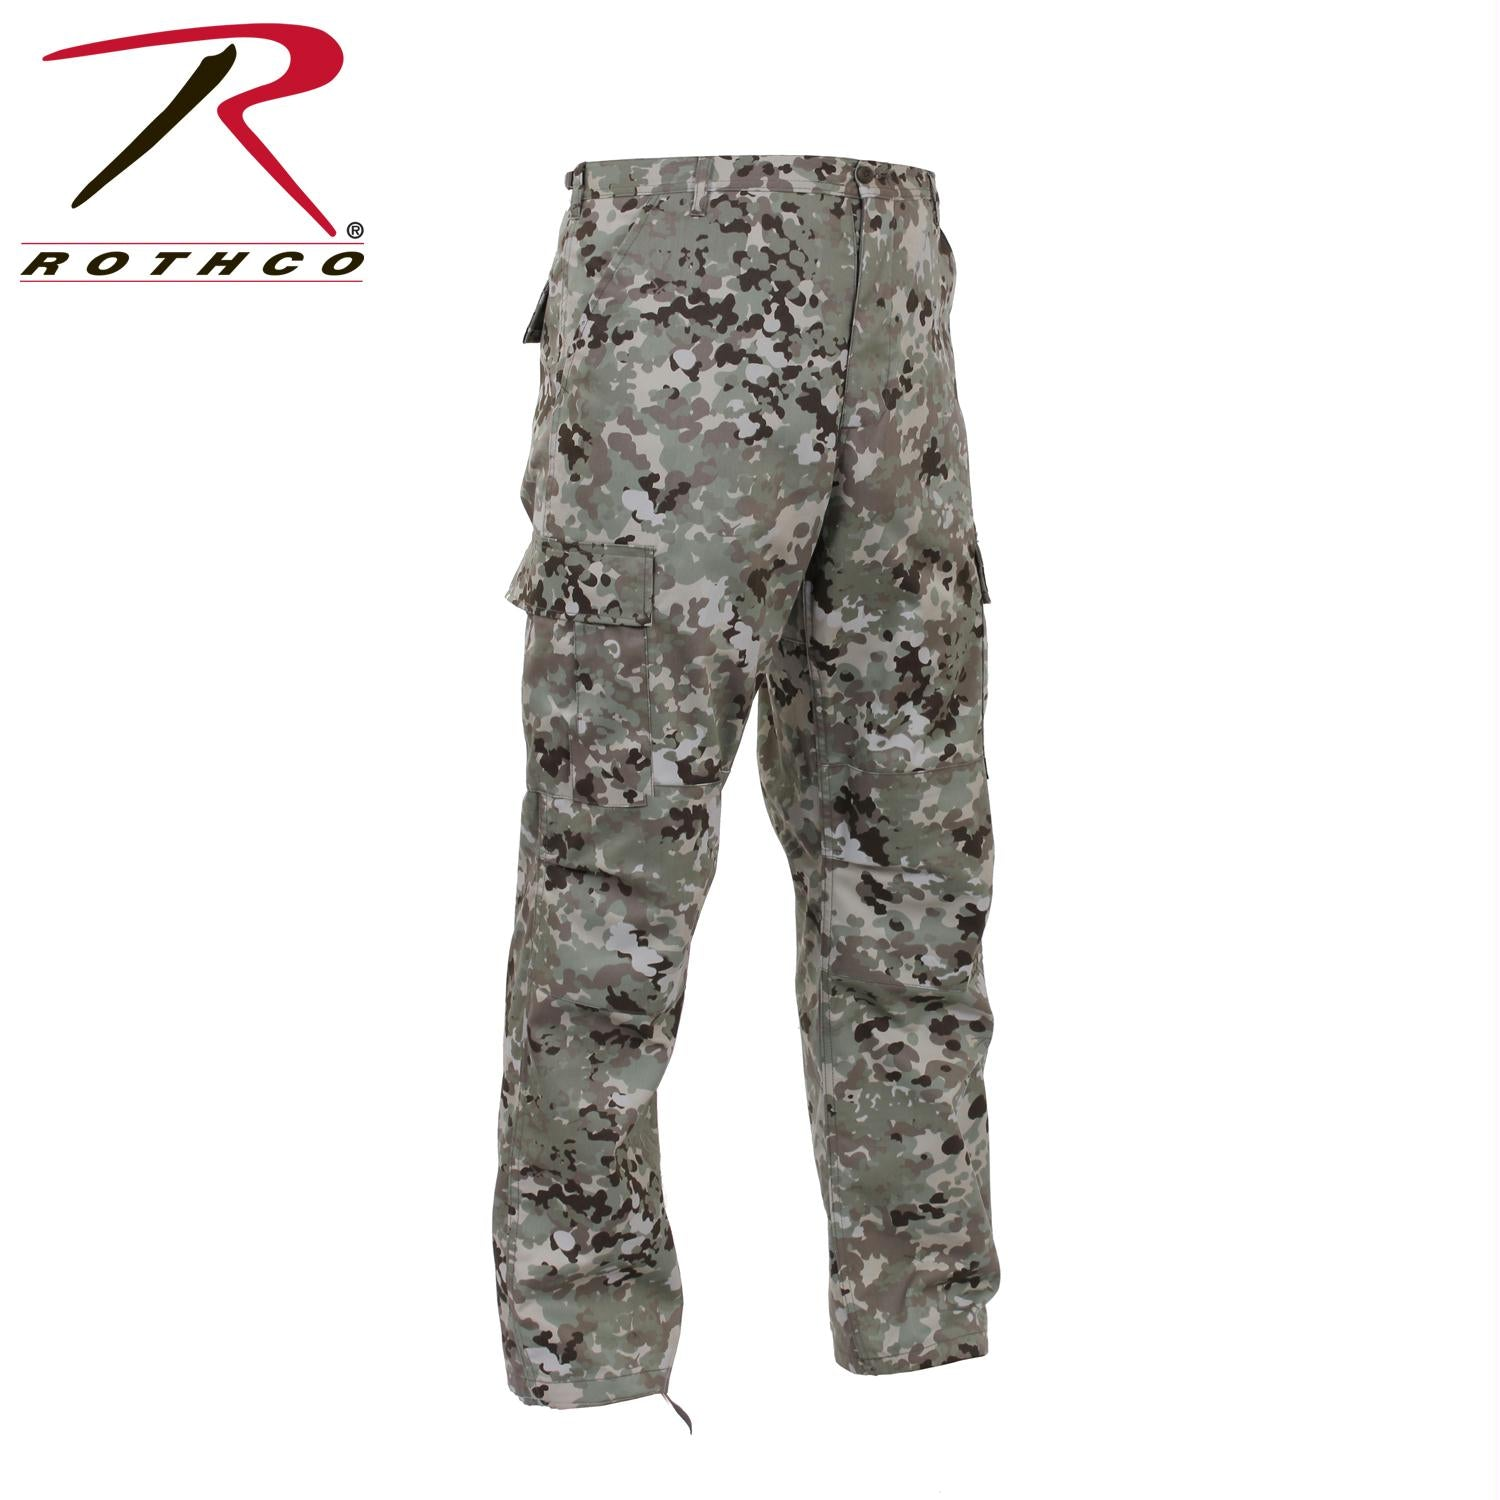 Rothco Camo Tactical BDU Pants - Total Terrain Camo / 3XL